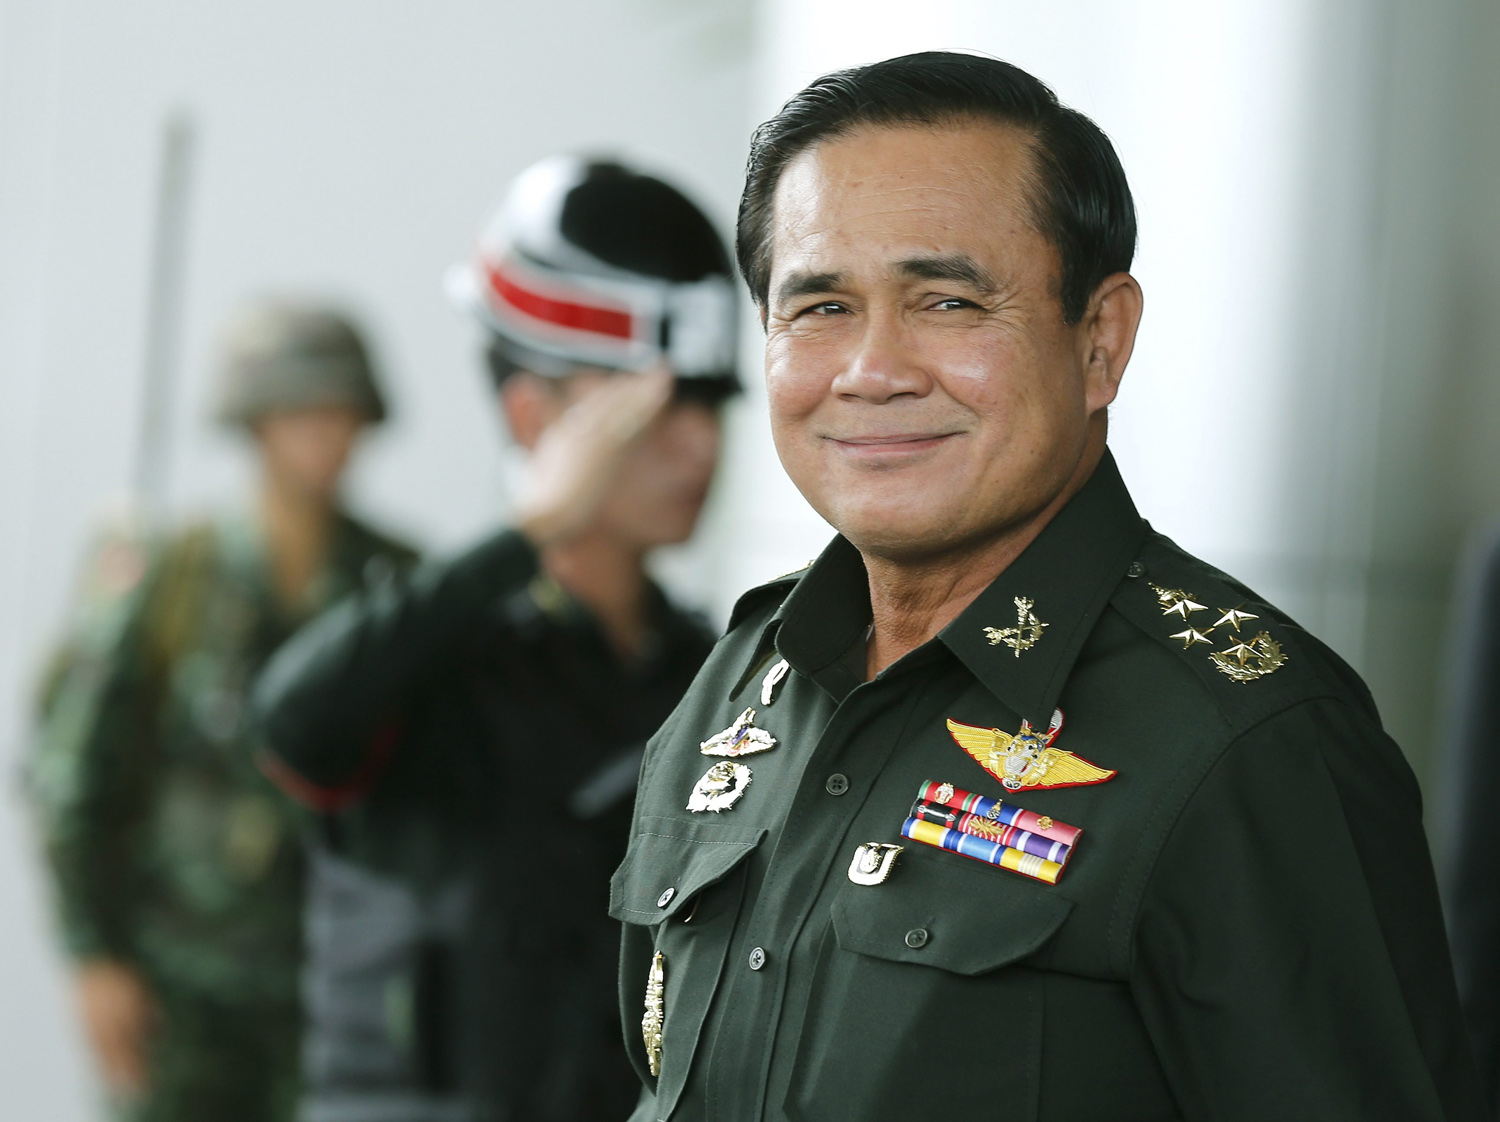 Thai army chief and junta head General Prayuth Chan-ocha smiles as he leave after the meeting of the 2015 national budget at the Army Club in Bangkok, June 13, 2014.